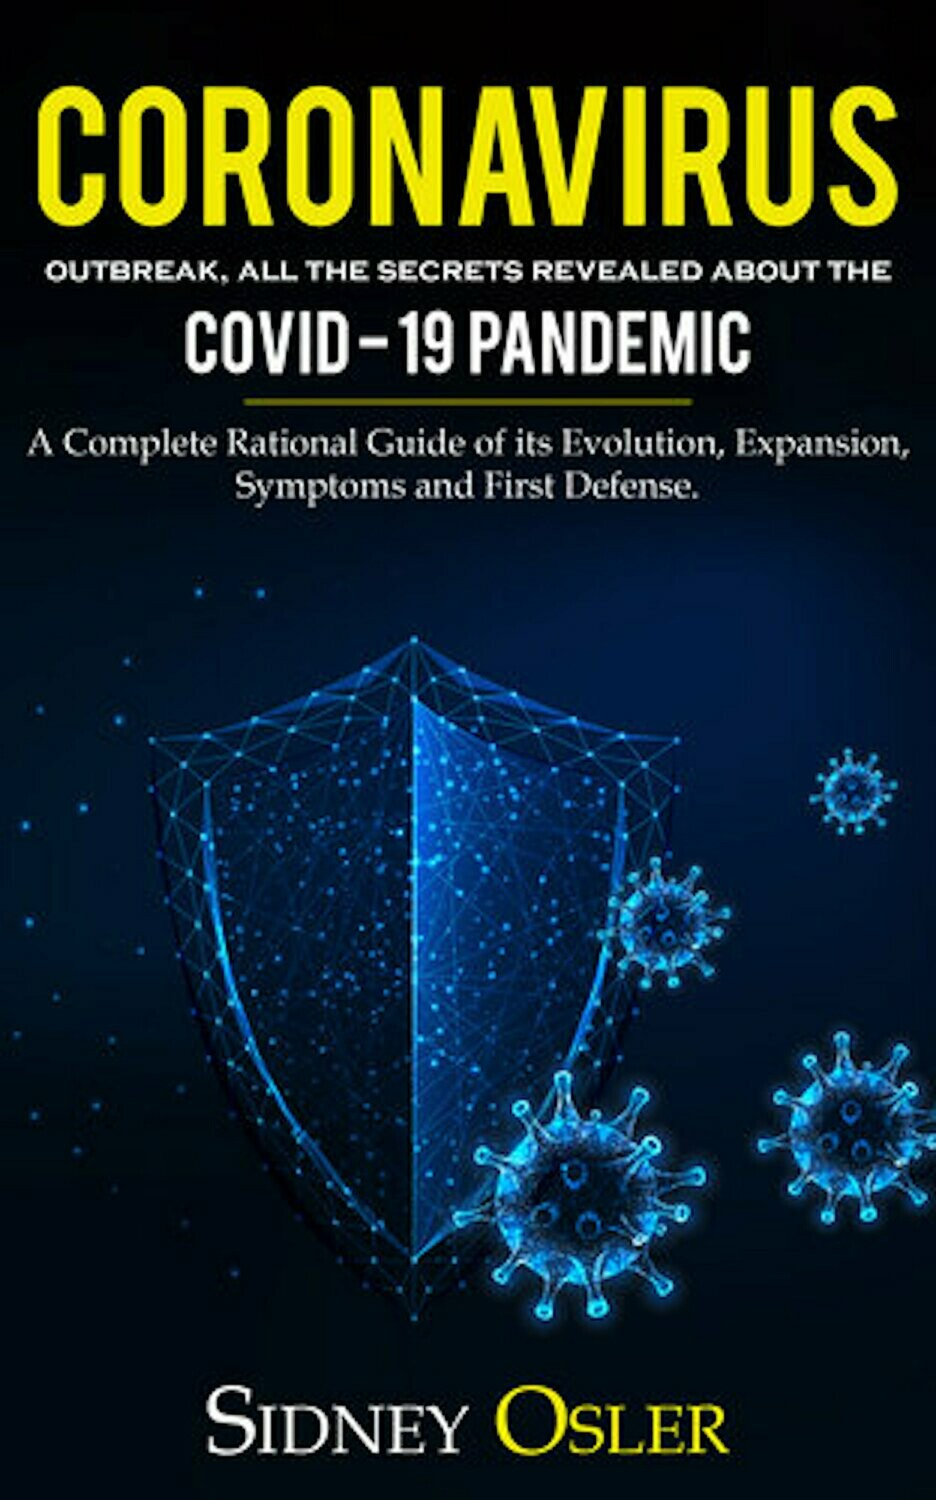 Coronavirus Outbreak: All the Secrets Revealed About the Covid-19 Pandemic. A Complete Rational Guide of its Evolution, Expansion, Symptoms and First Defense.